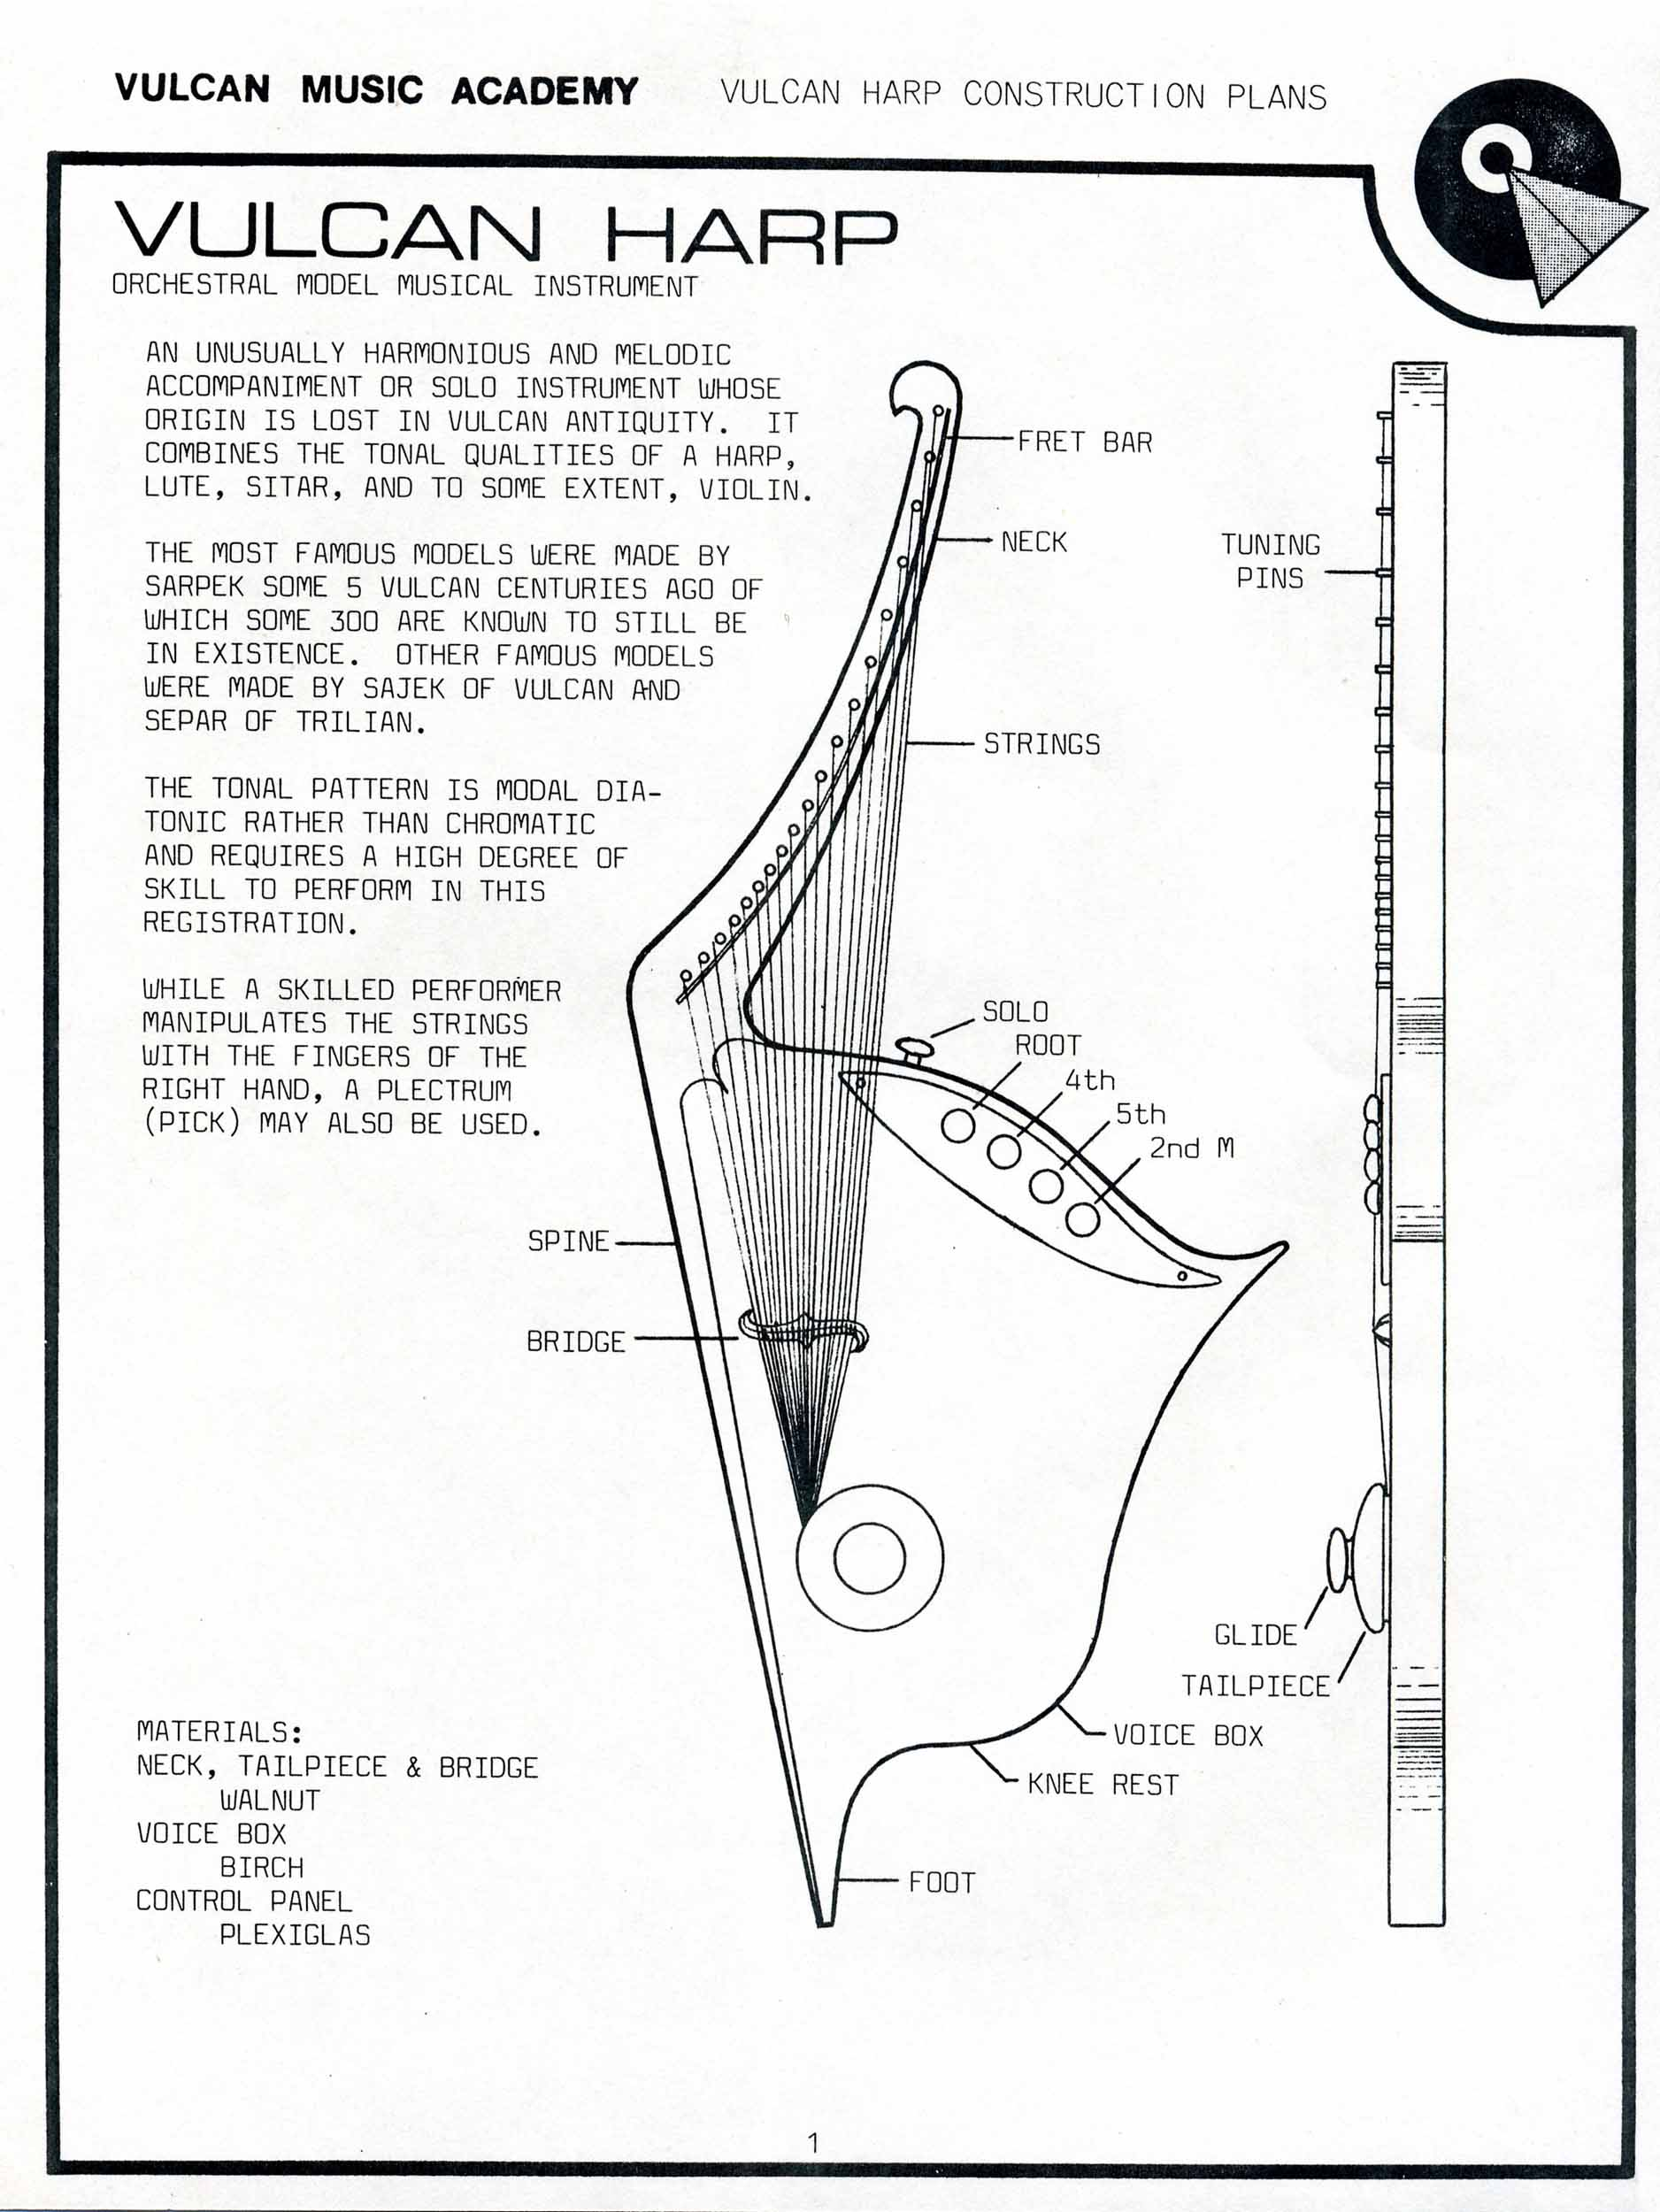 star trek blueprints  vulcan harp construction plans